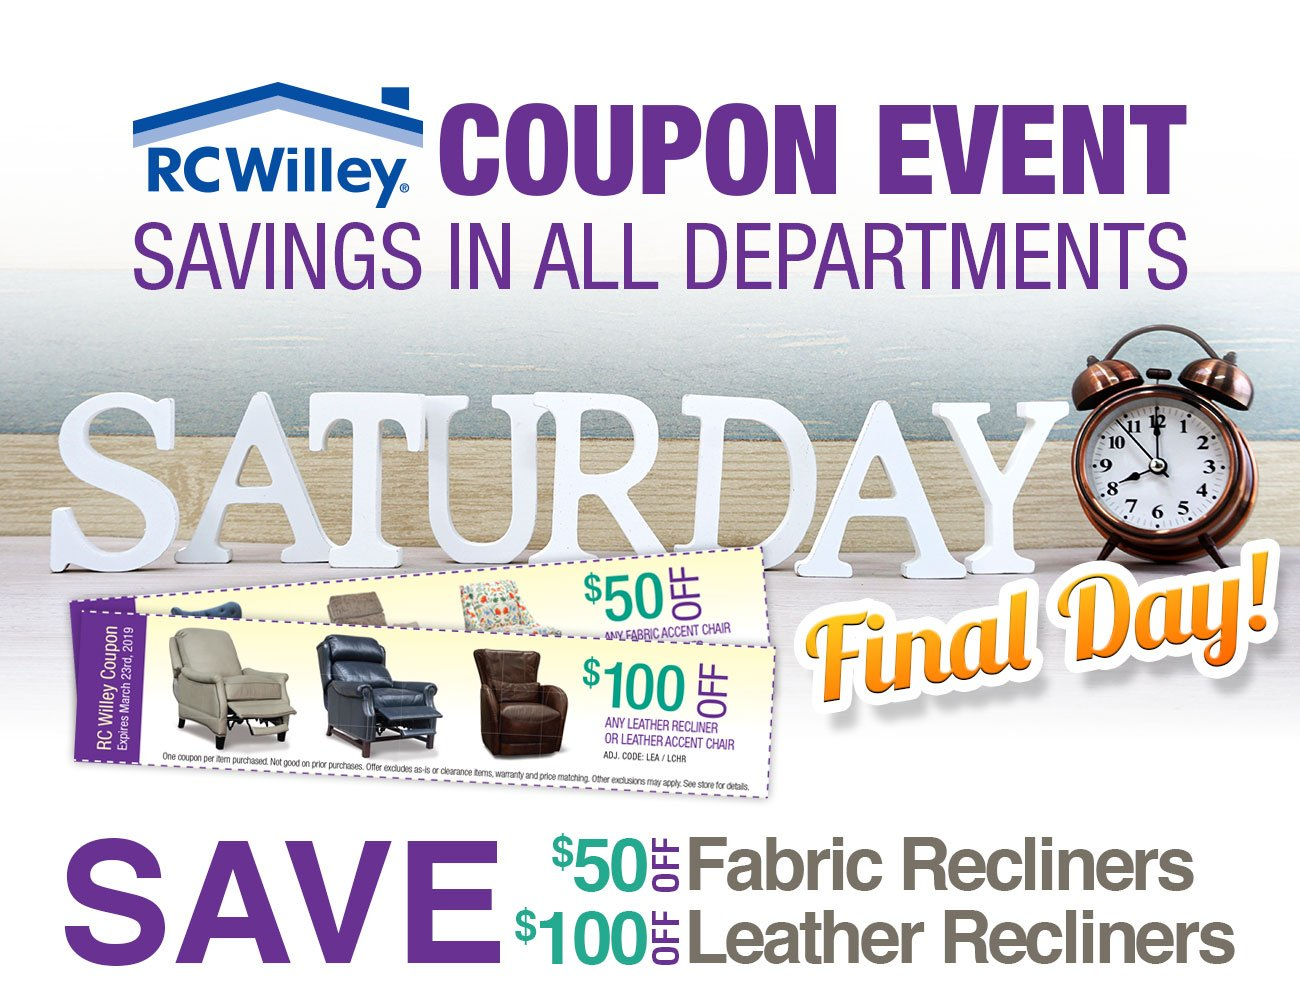 Save up to $100 on top of RC Willey's low prices on recliners during our Coupon Event